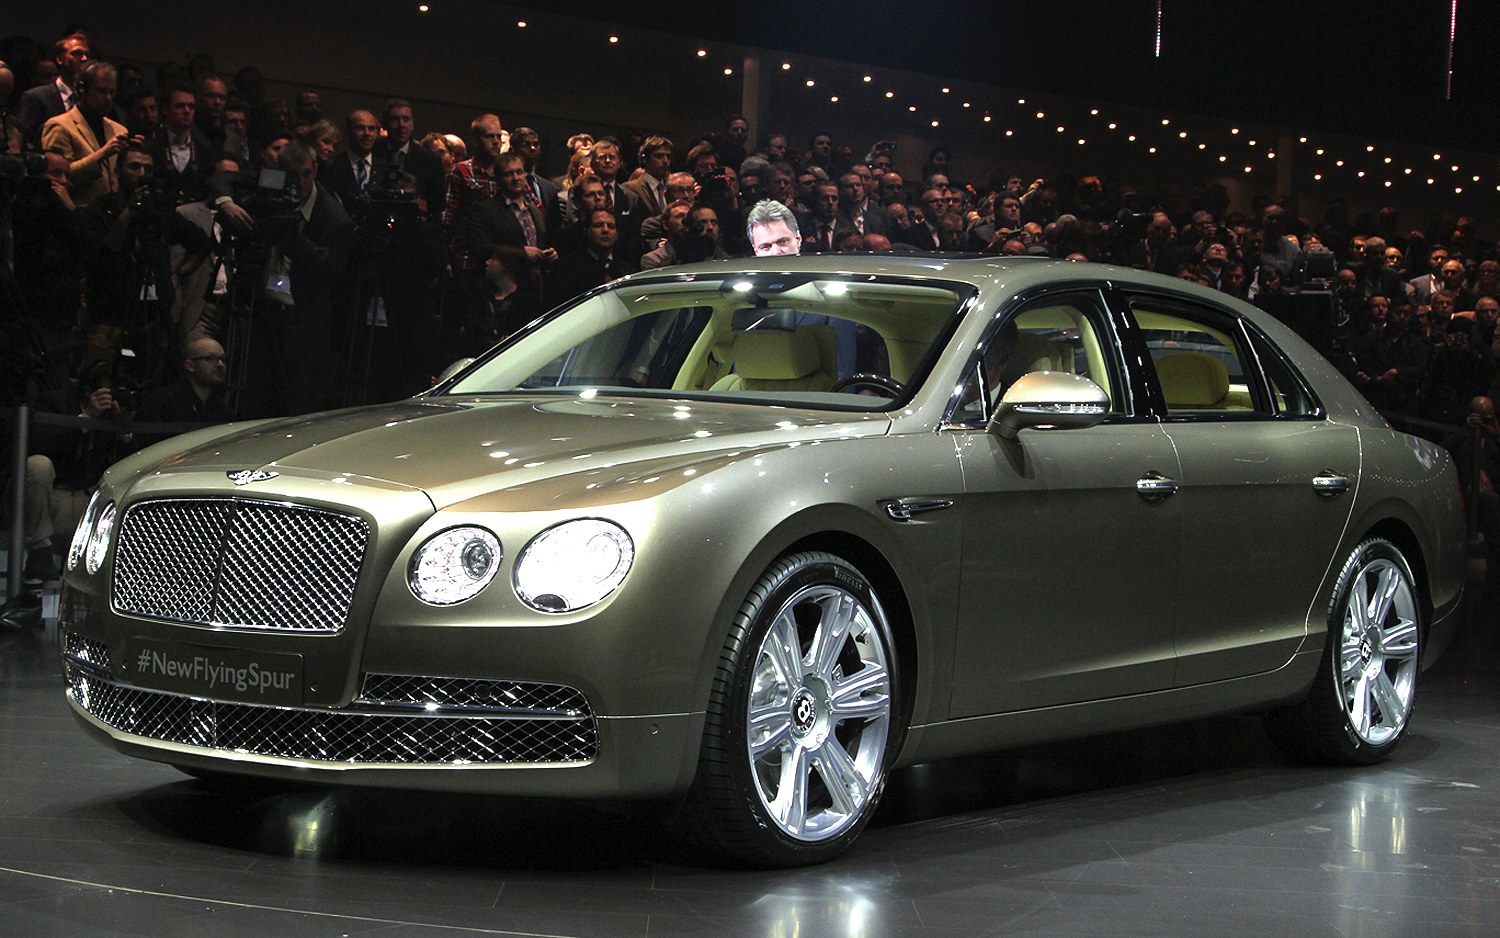 2014 Bentley Flying Spur #3